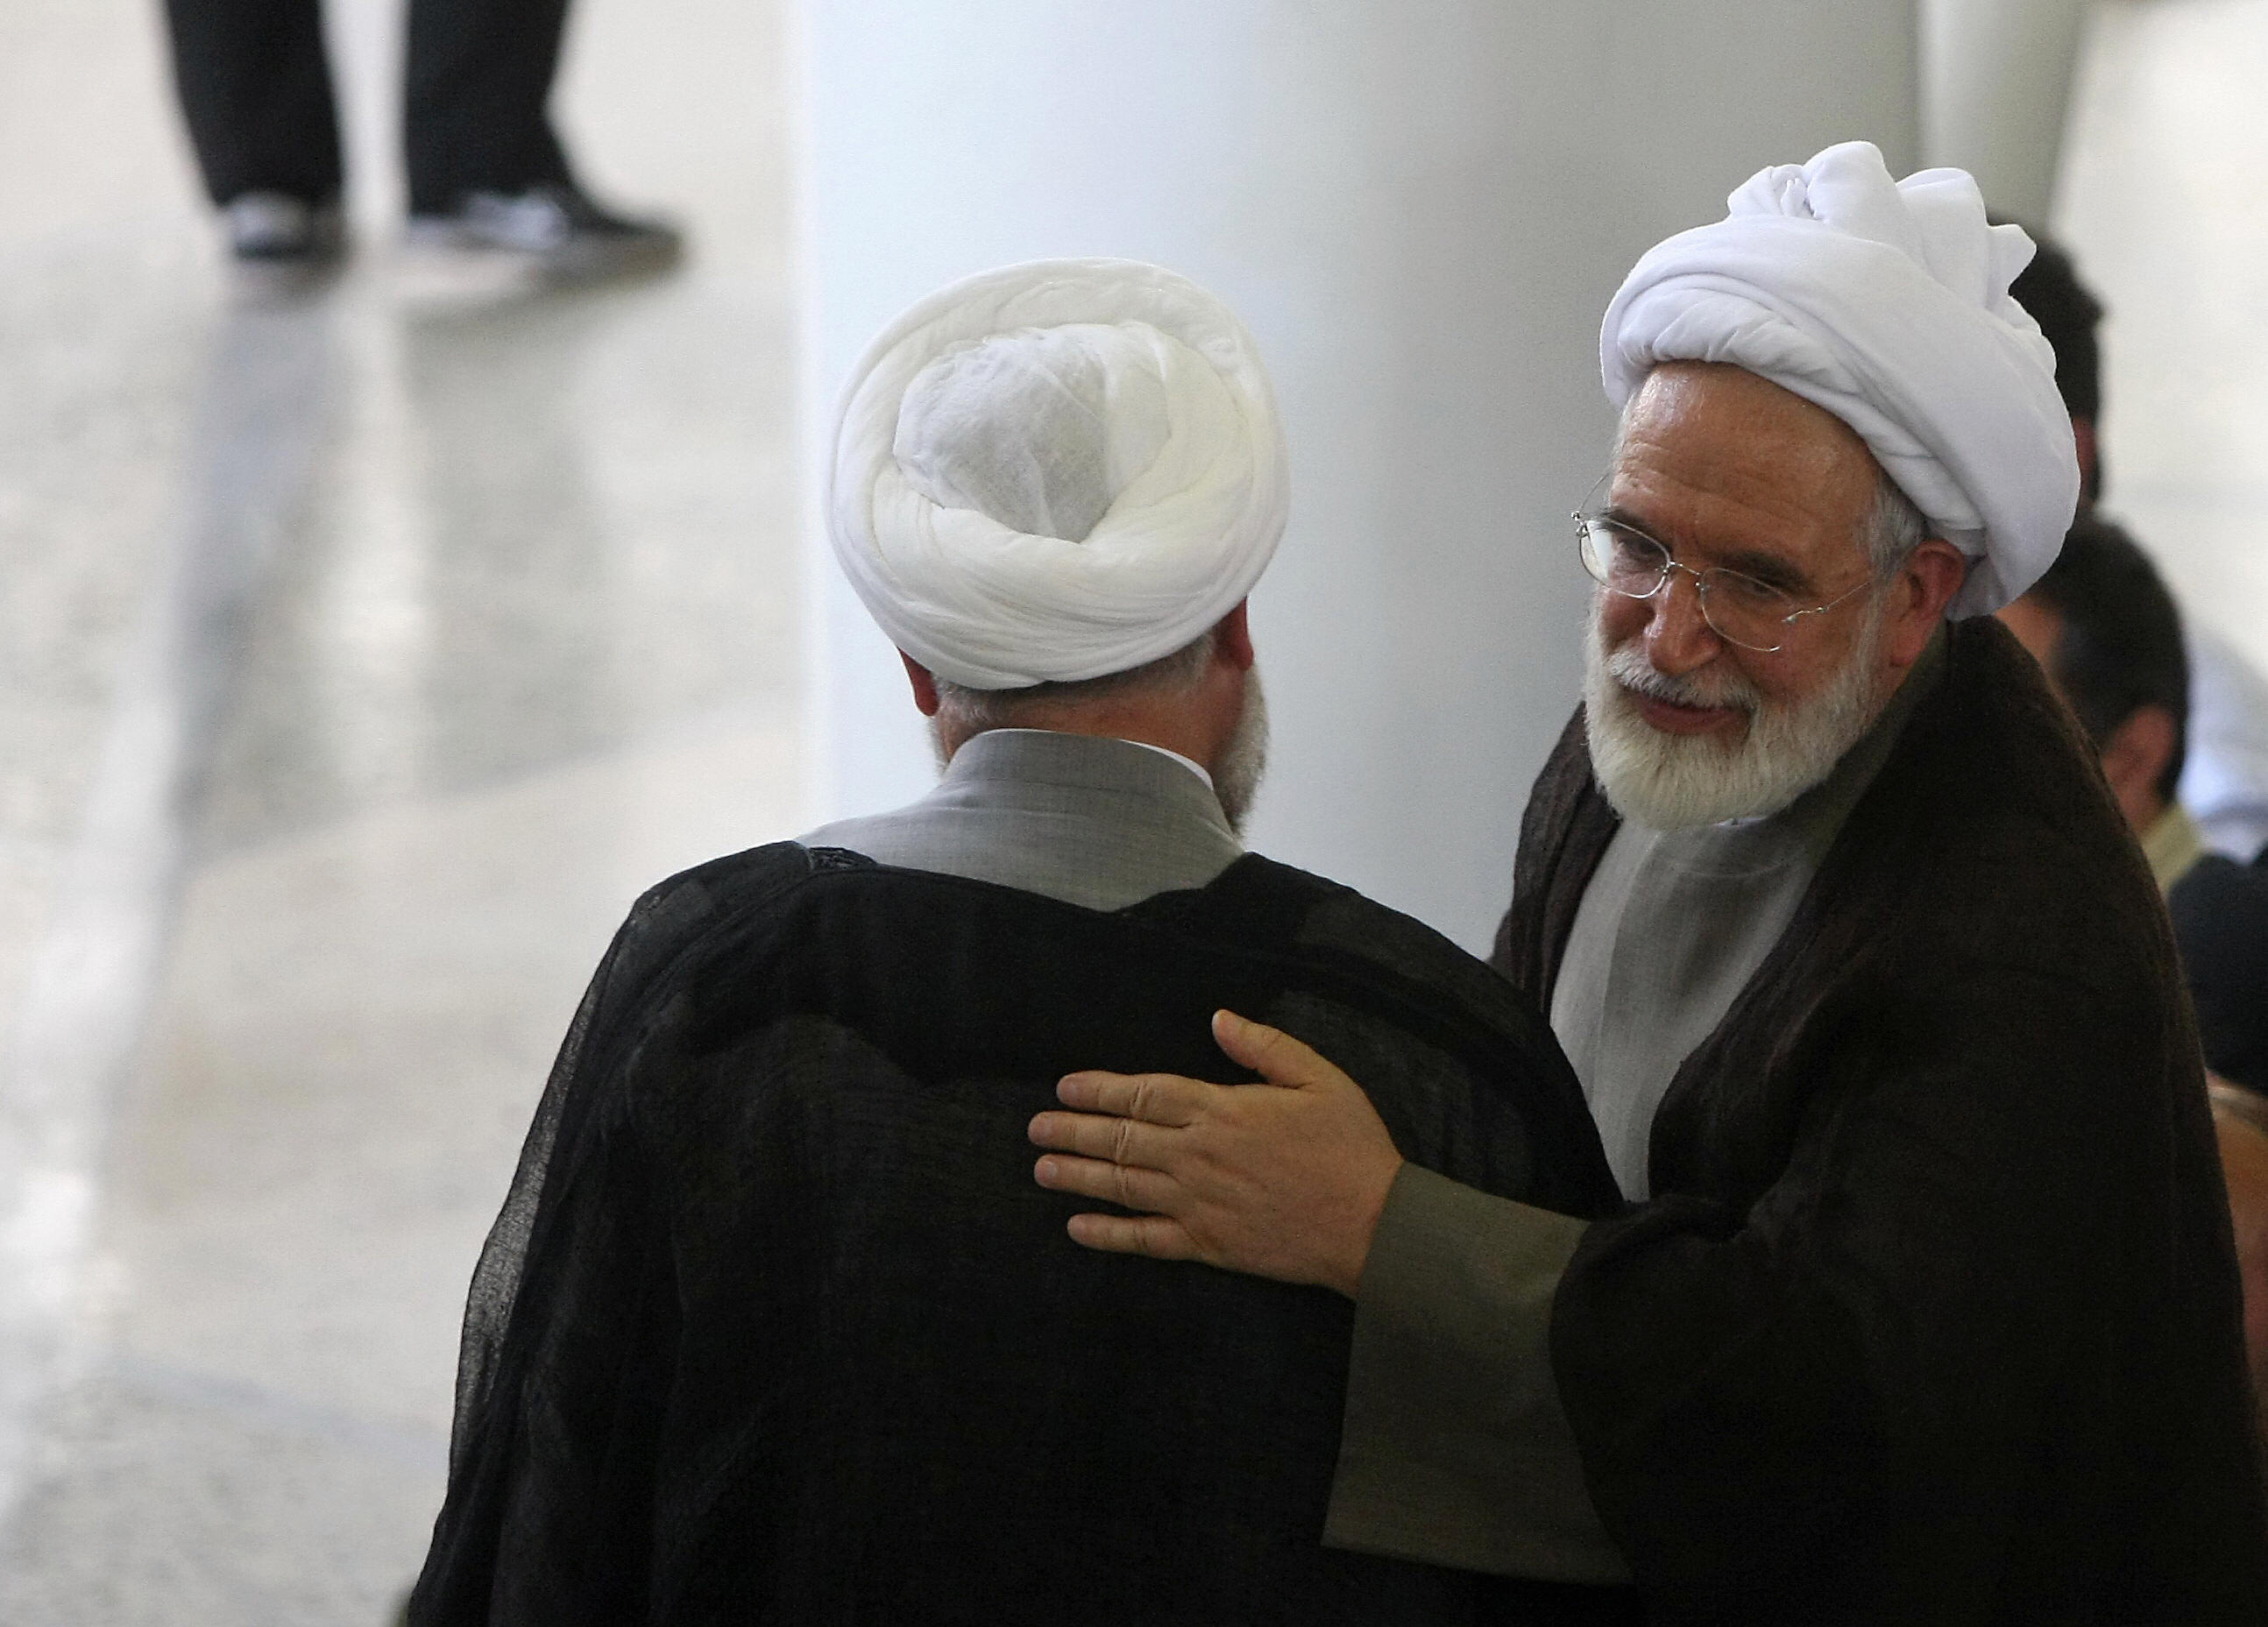 Iranian defeated presidential candidate Mehdi Karroubi (R) speaks with an unidentified cleric following Friday prayers at Tehran University in the Iranian capital on July 17, 2009.